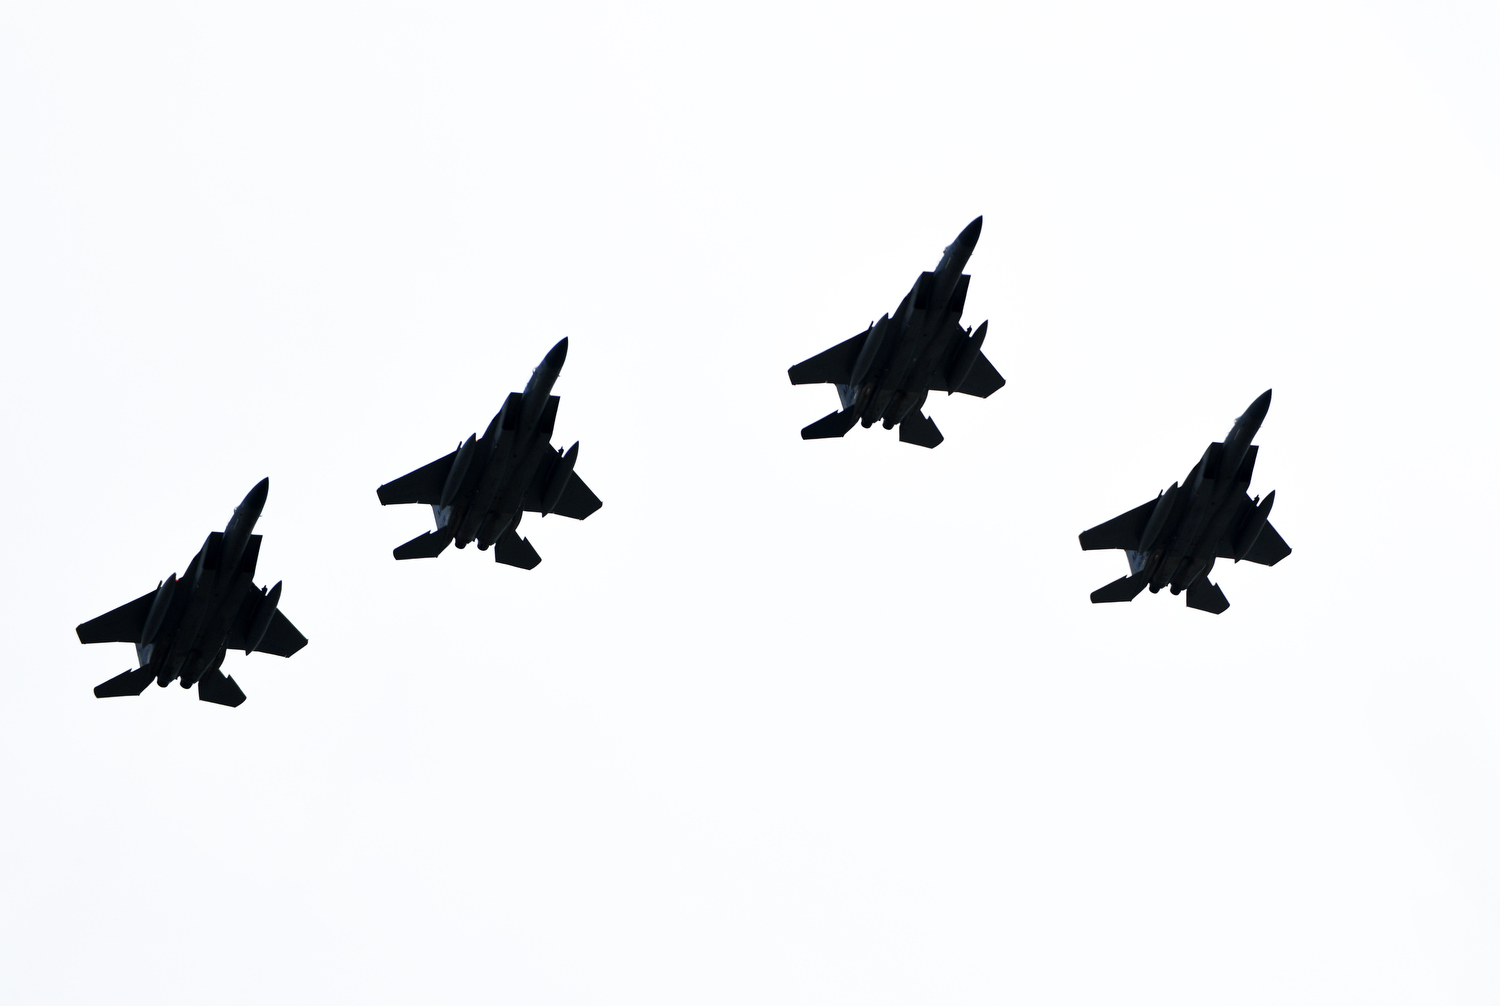 HYANNIS - Four F-15s from 104th Fighter Wing of the Massachusetts Air National Guard fly over Cape Cod Hospital honoring frontline workers on Wednesday, May 6, 2020. Operation American Resolve also flew over facilities in Brockton, Boston, Framingham, Worcester, Springfield, Holyoke, Northampton and Westfield.